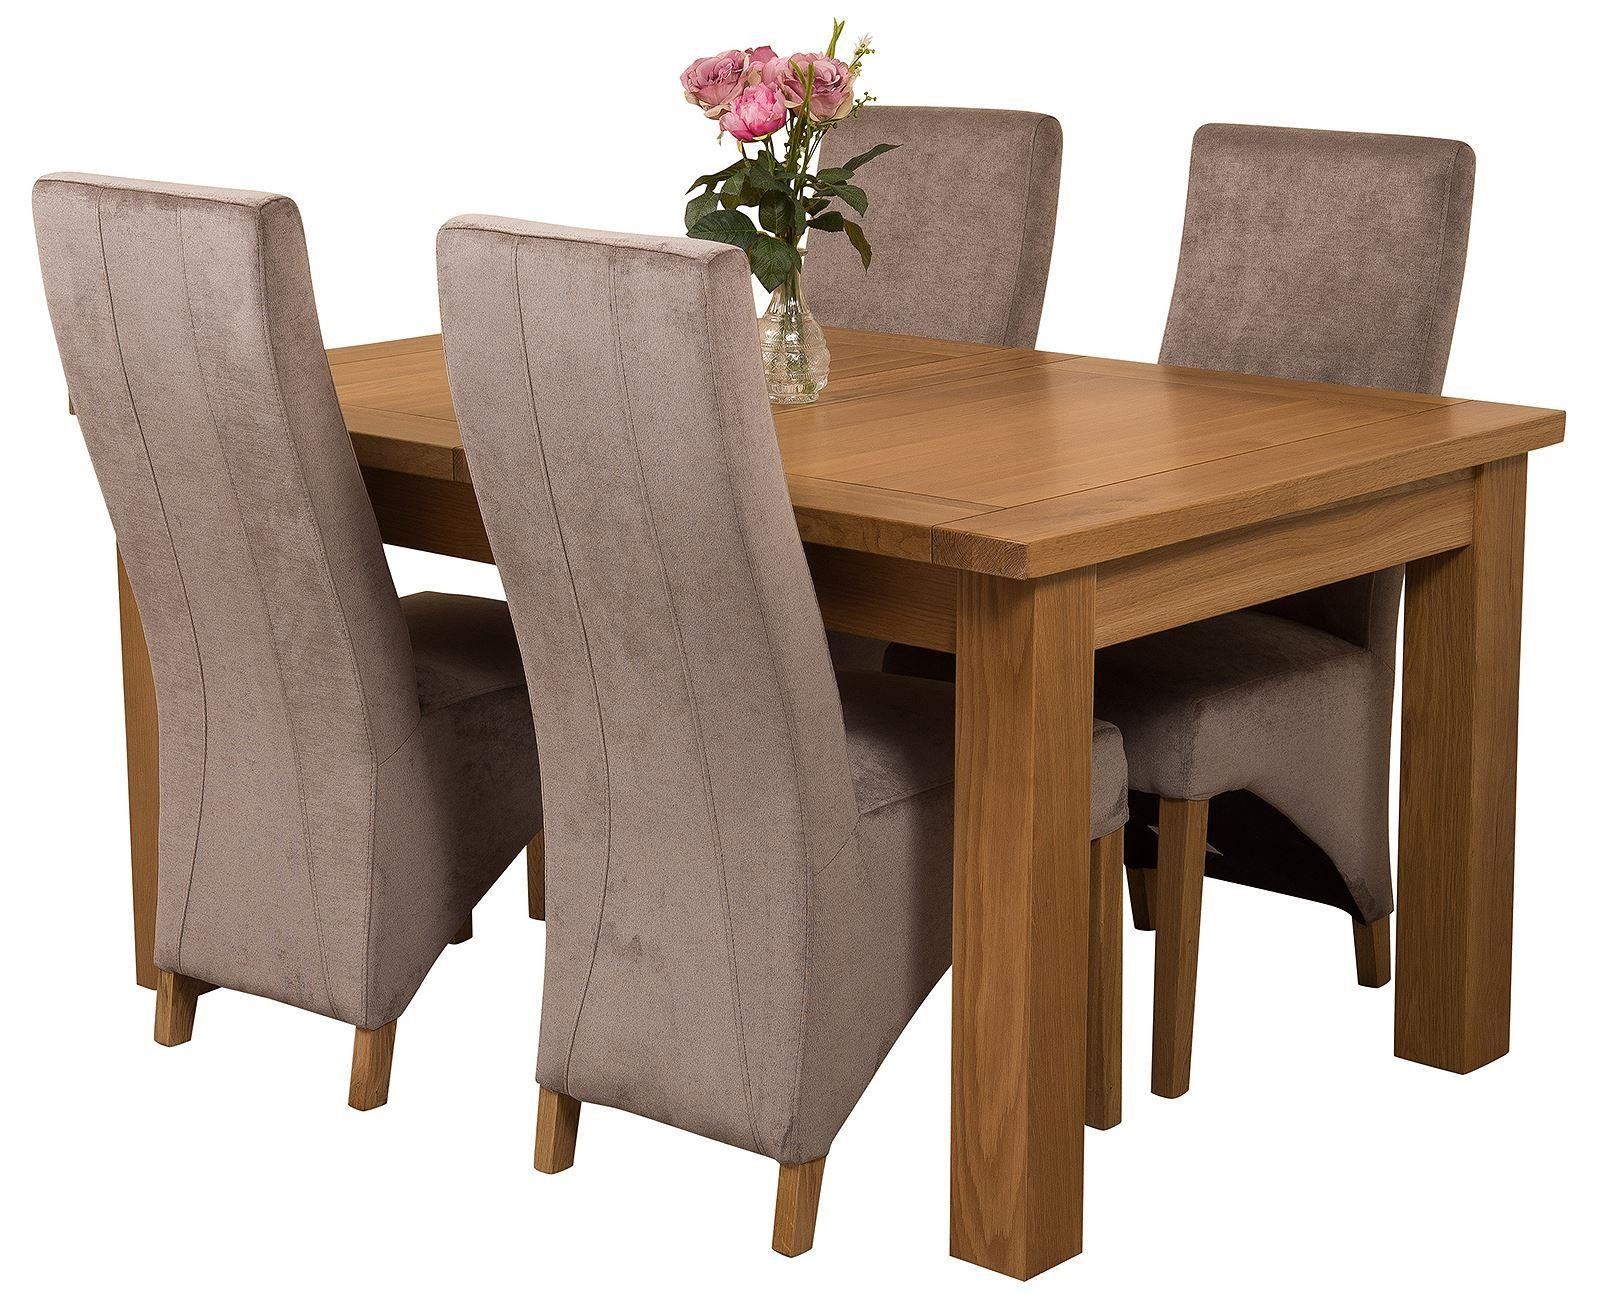 Seattle Solid Oak 150cm-210cm Extending Dining Table with 4 Lola Dining Chairs [Grey Fabric]